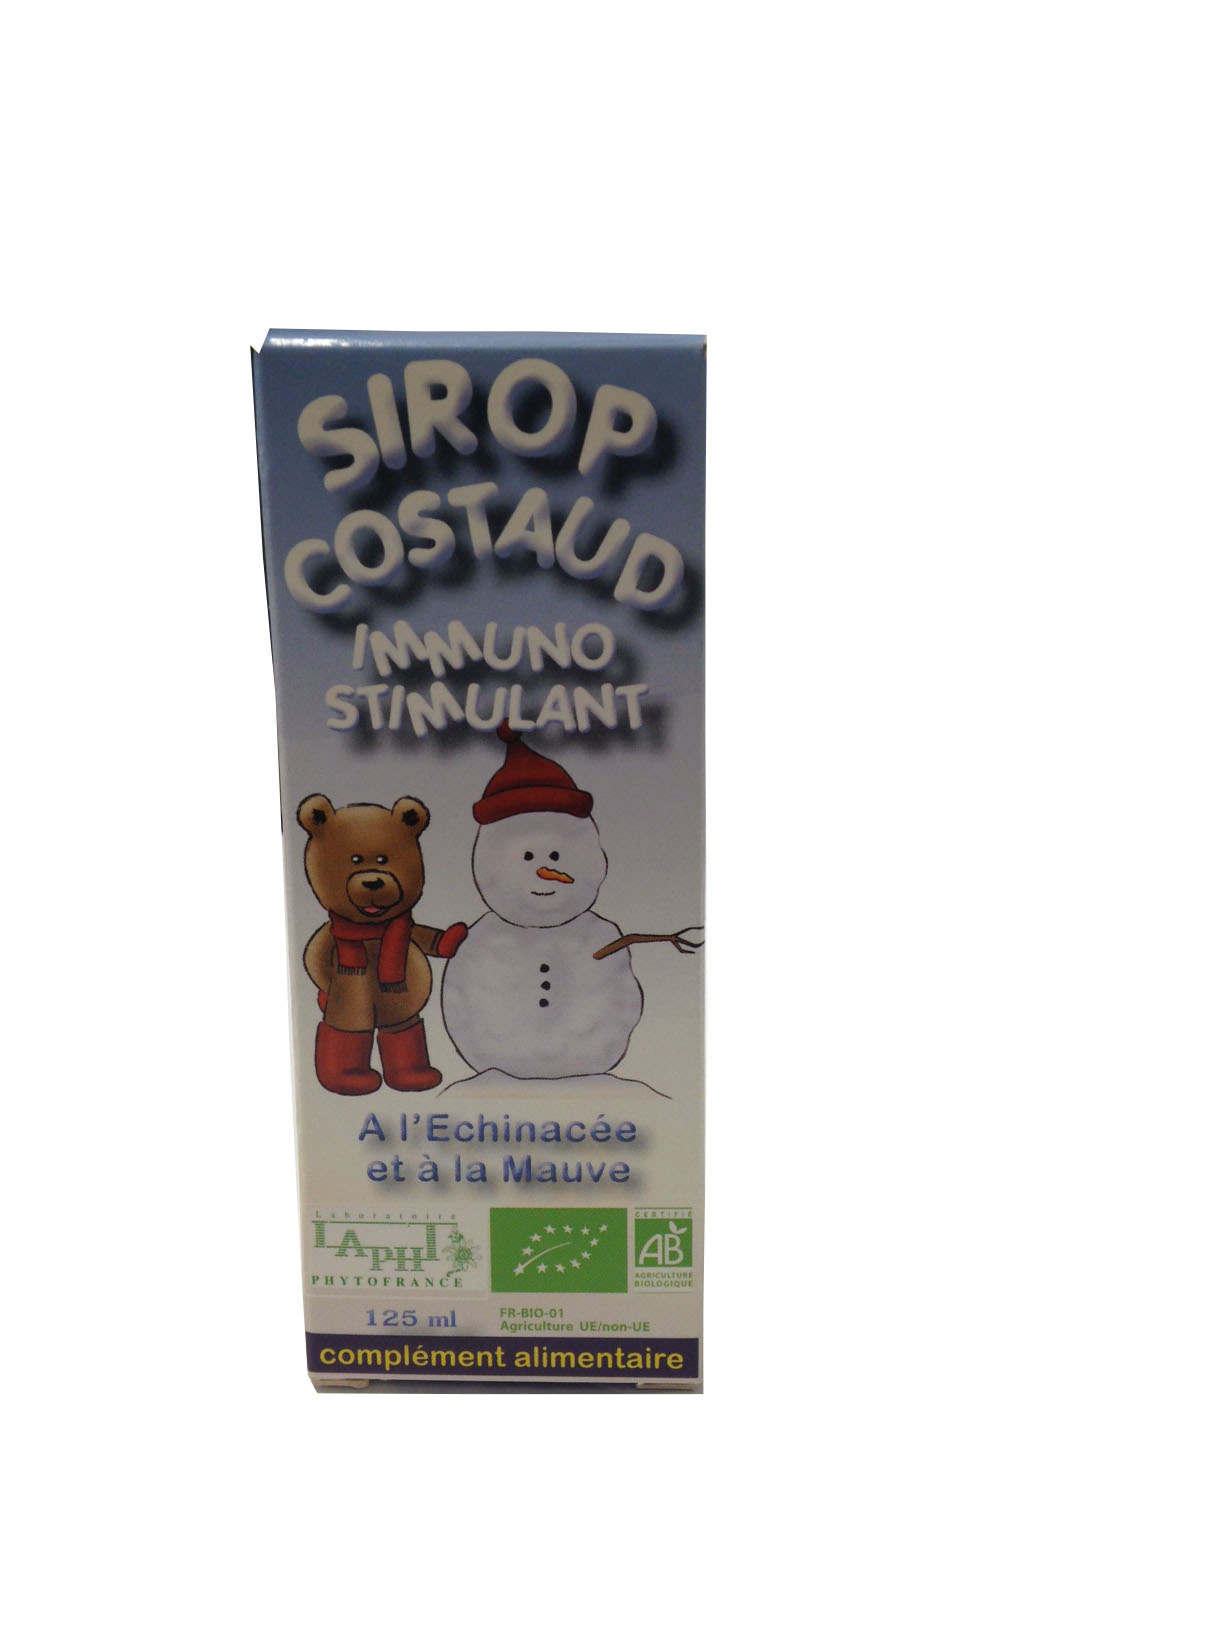 Sirop costaud immuno-stimulant